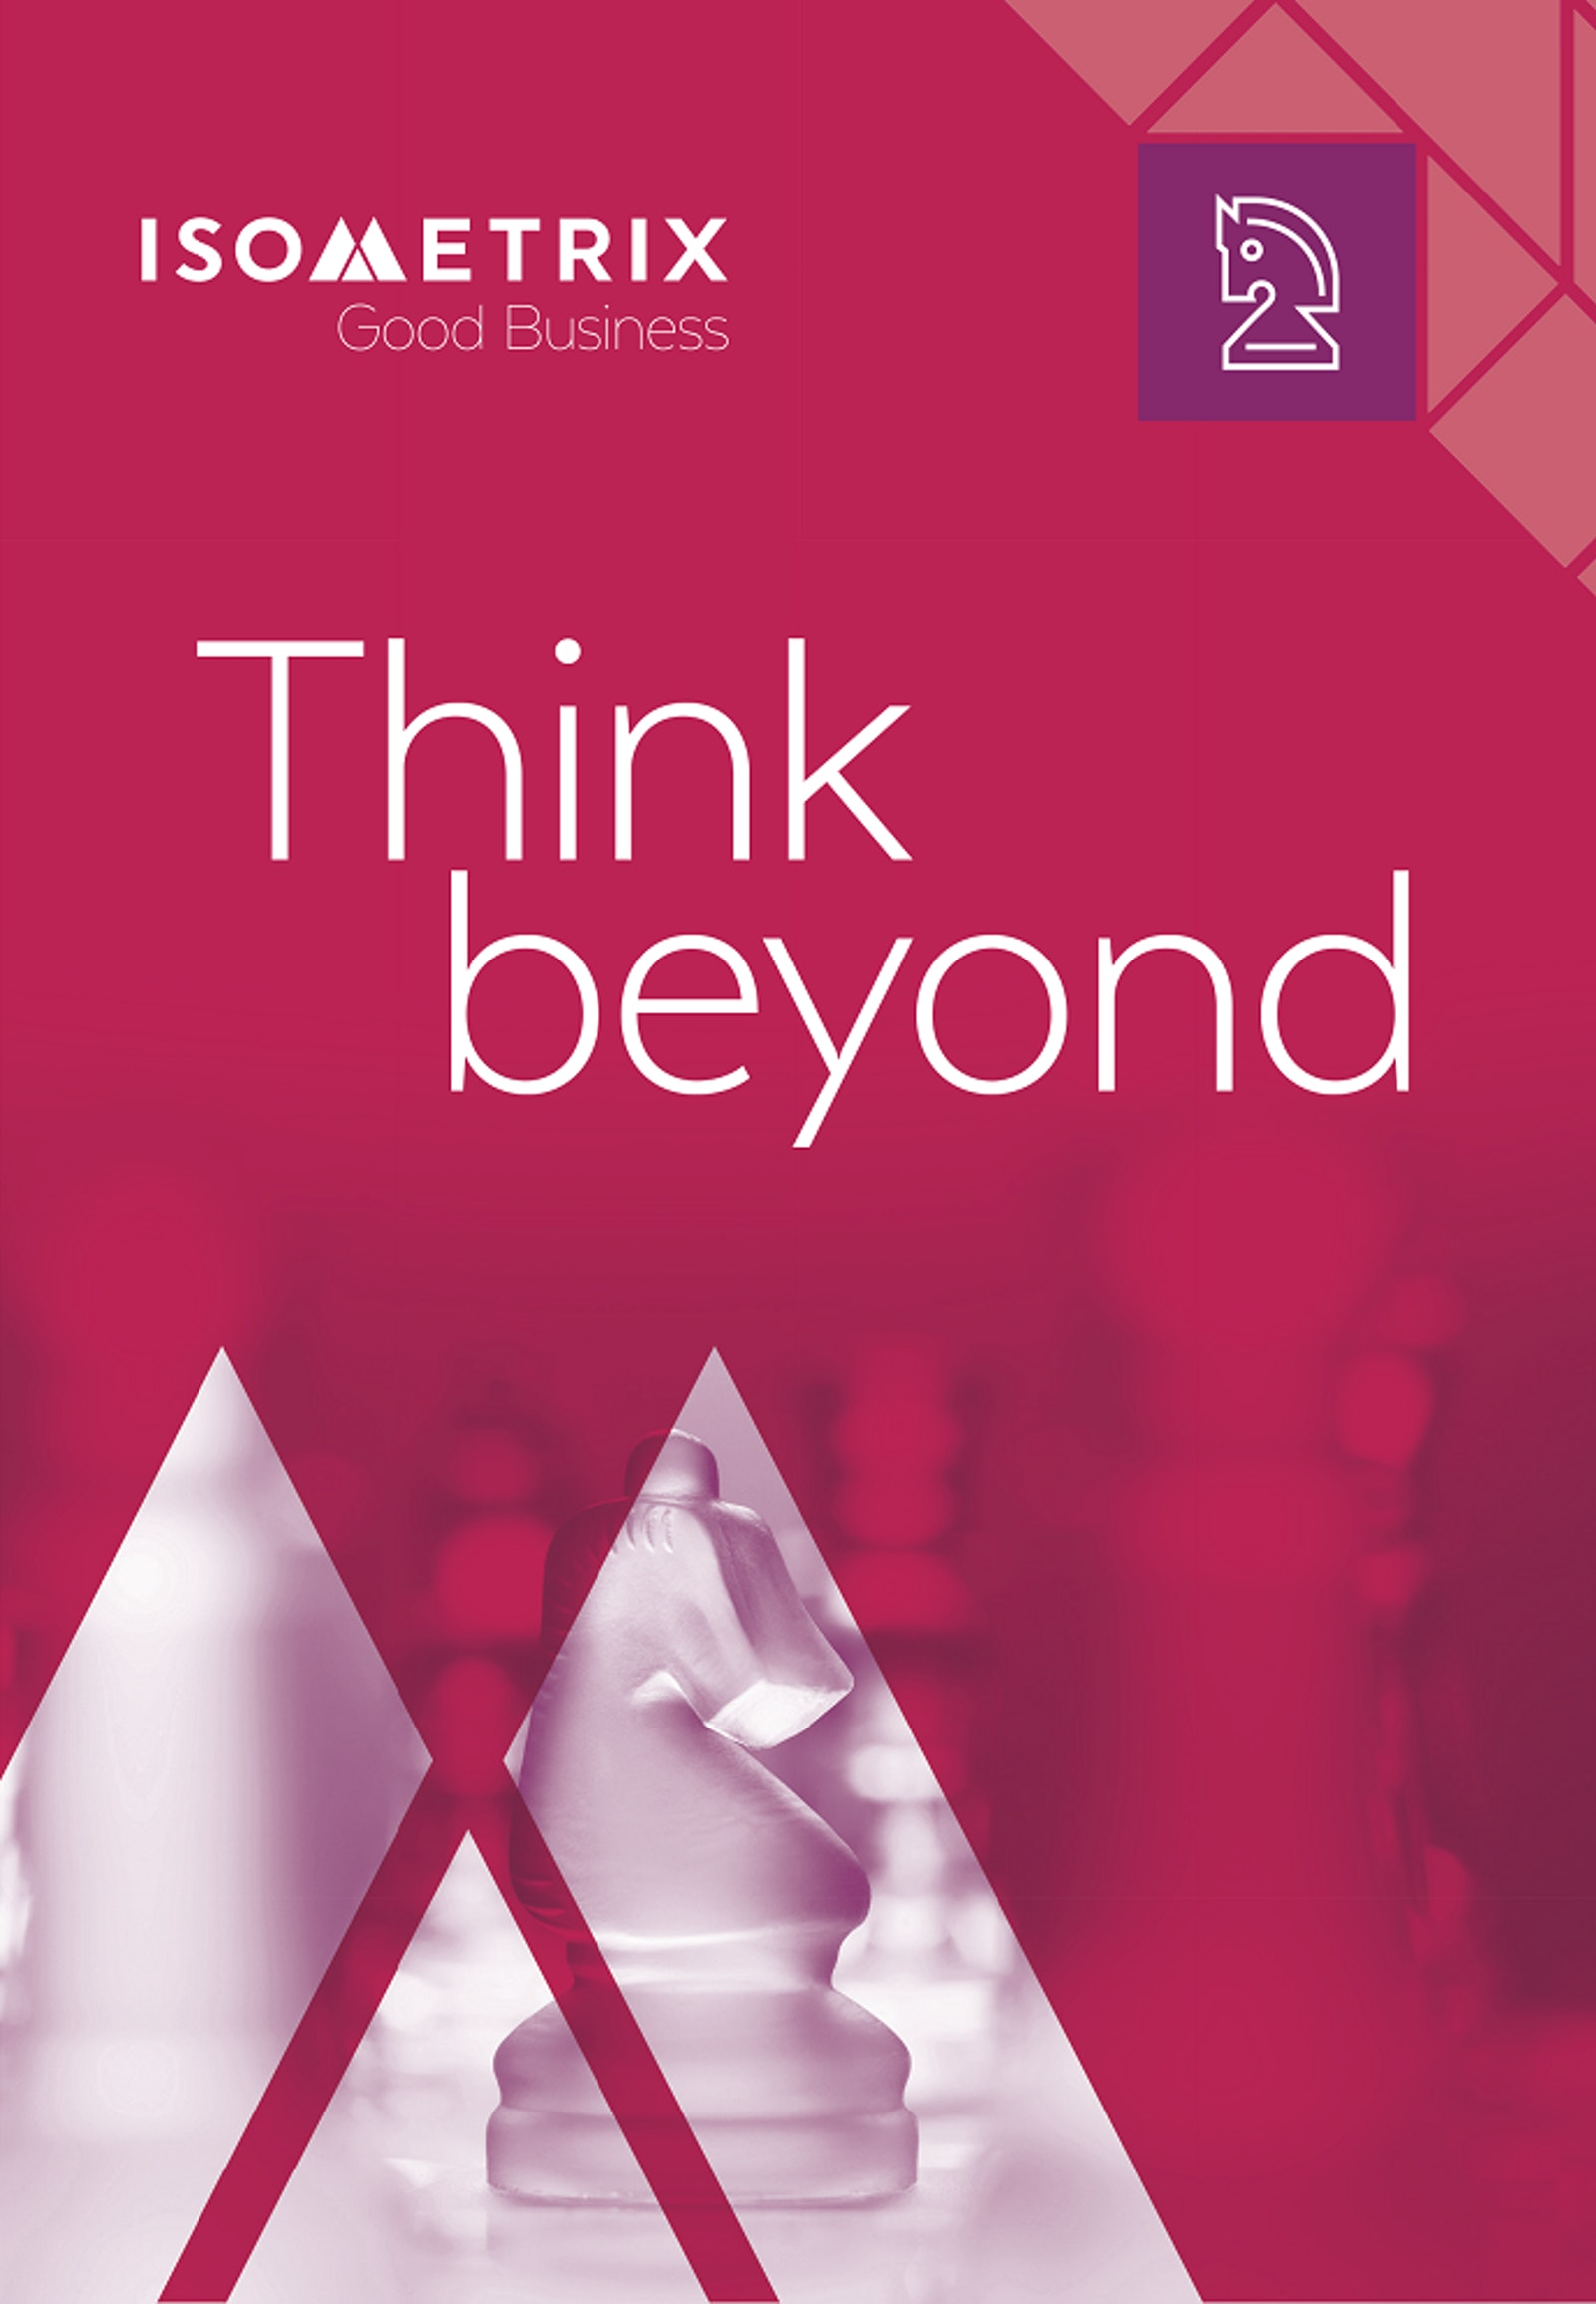 DNA Think beyond Poster